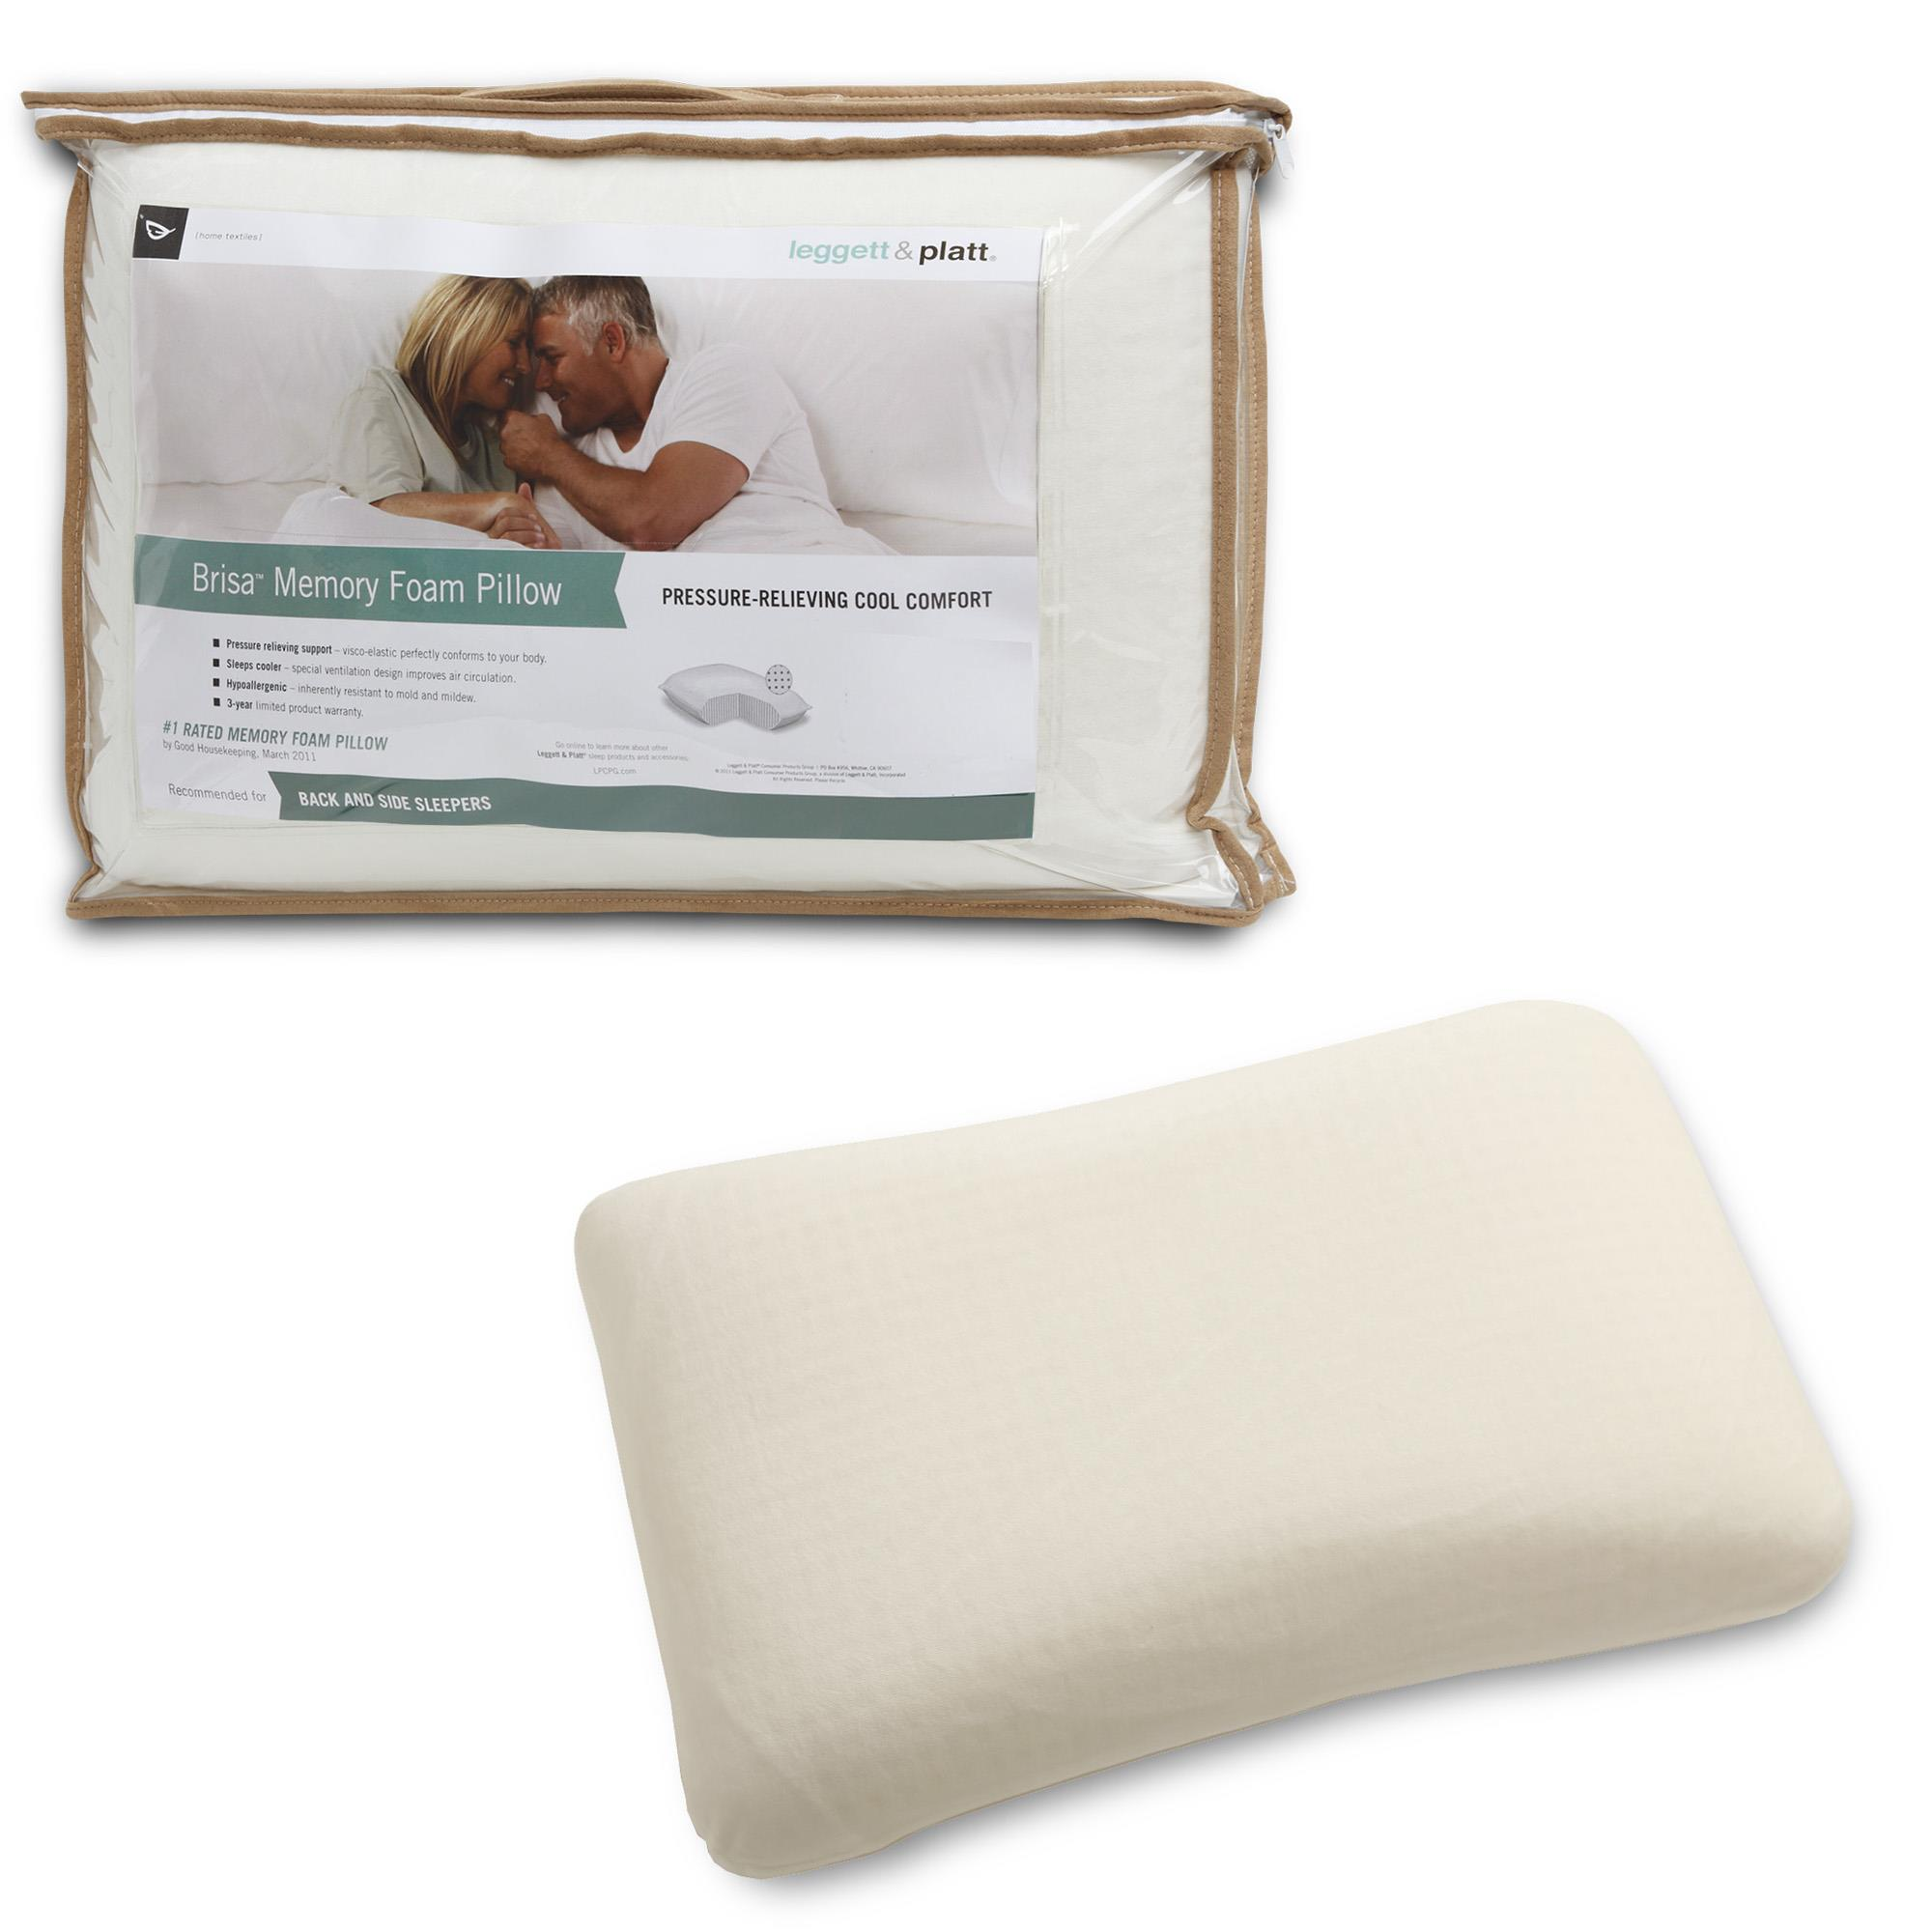 Fashion Bed Group Brisa Memory Foam Pillow with Portable Zippered Carrying  Case - [QG0077]